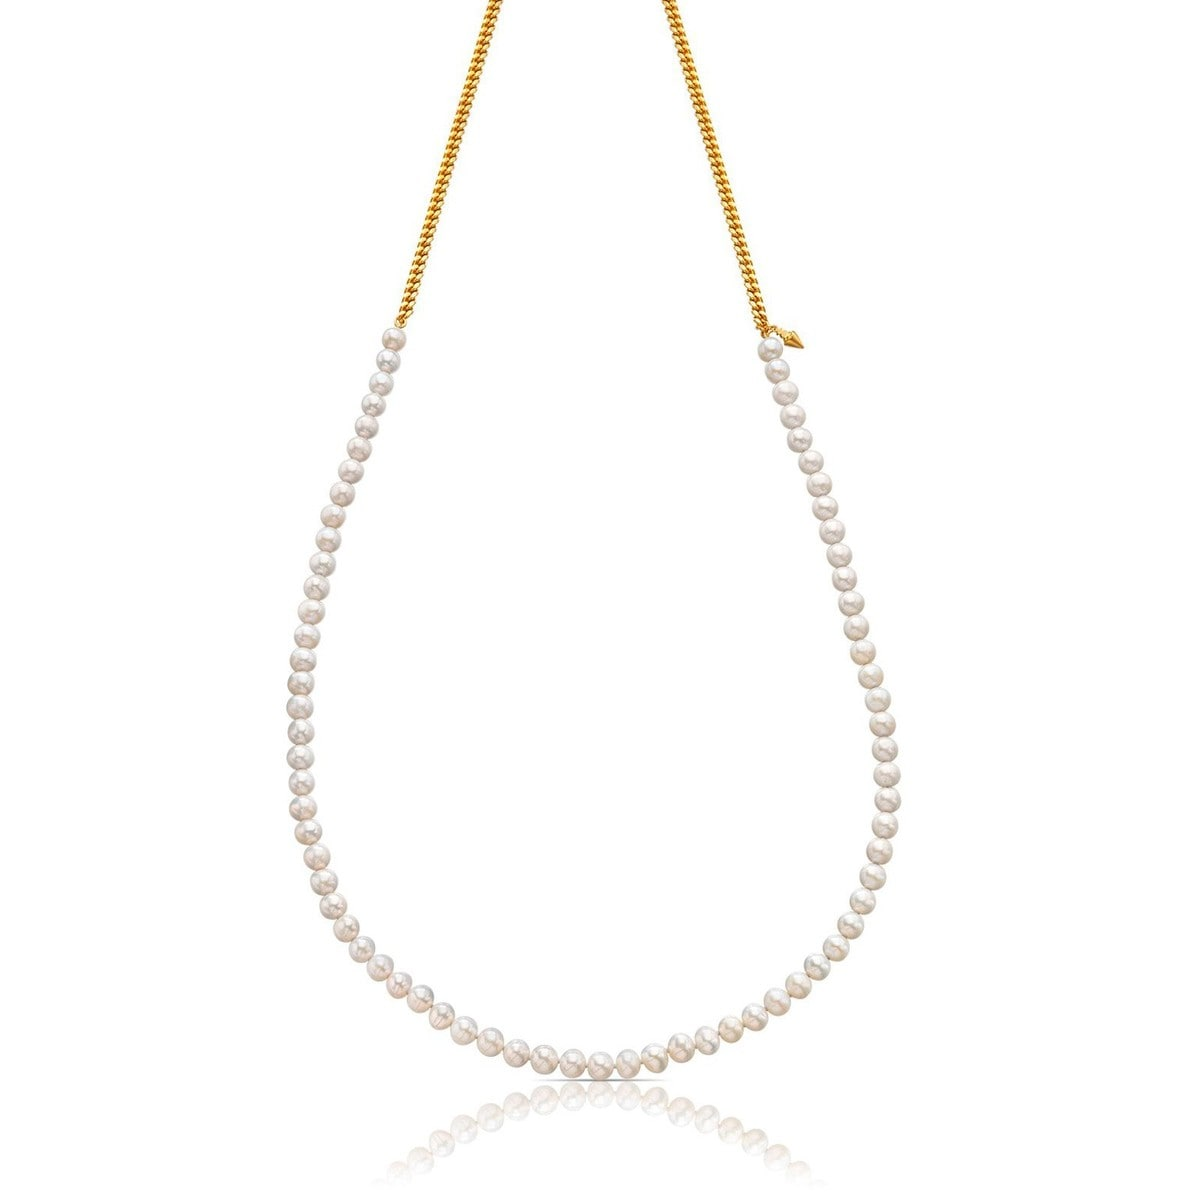 Vermeil Silver Hendel Necklace with Pearl